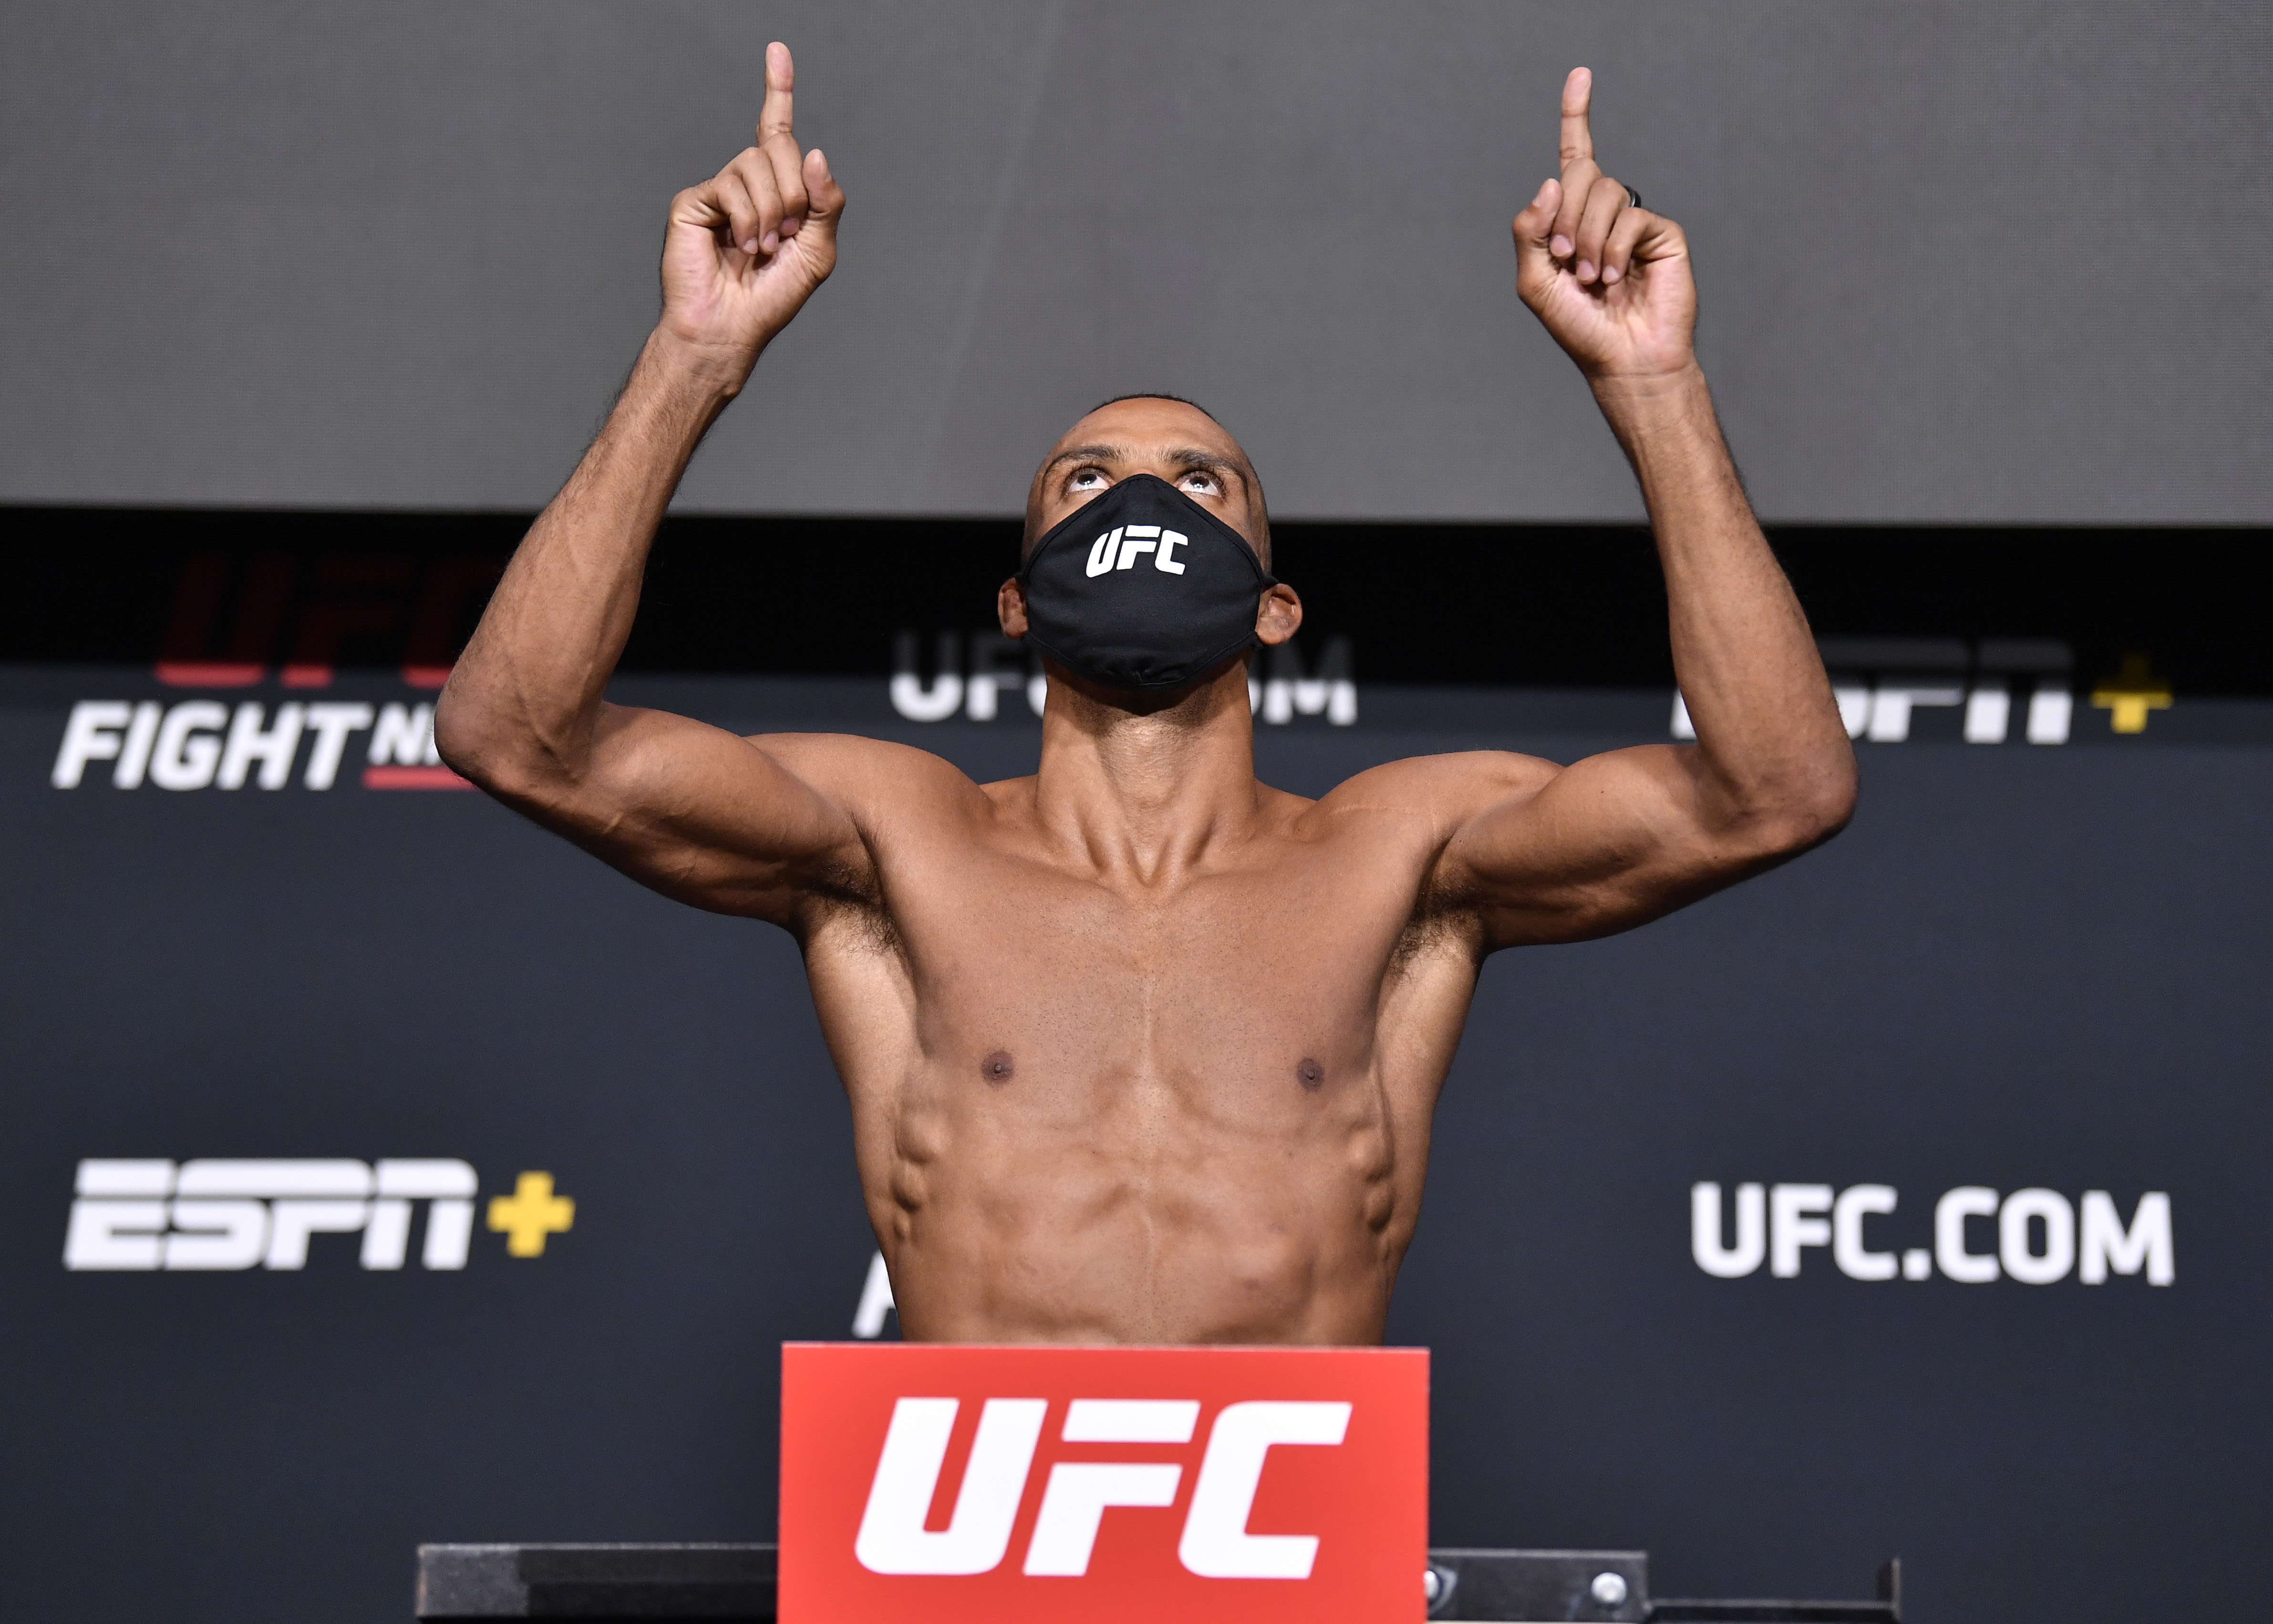 Edson Barboza is set to face Giga Chikadze on August 28.